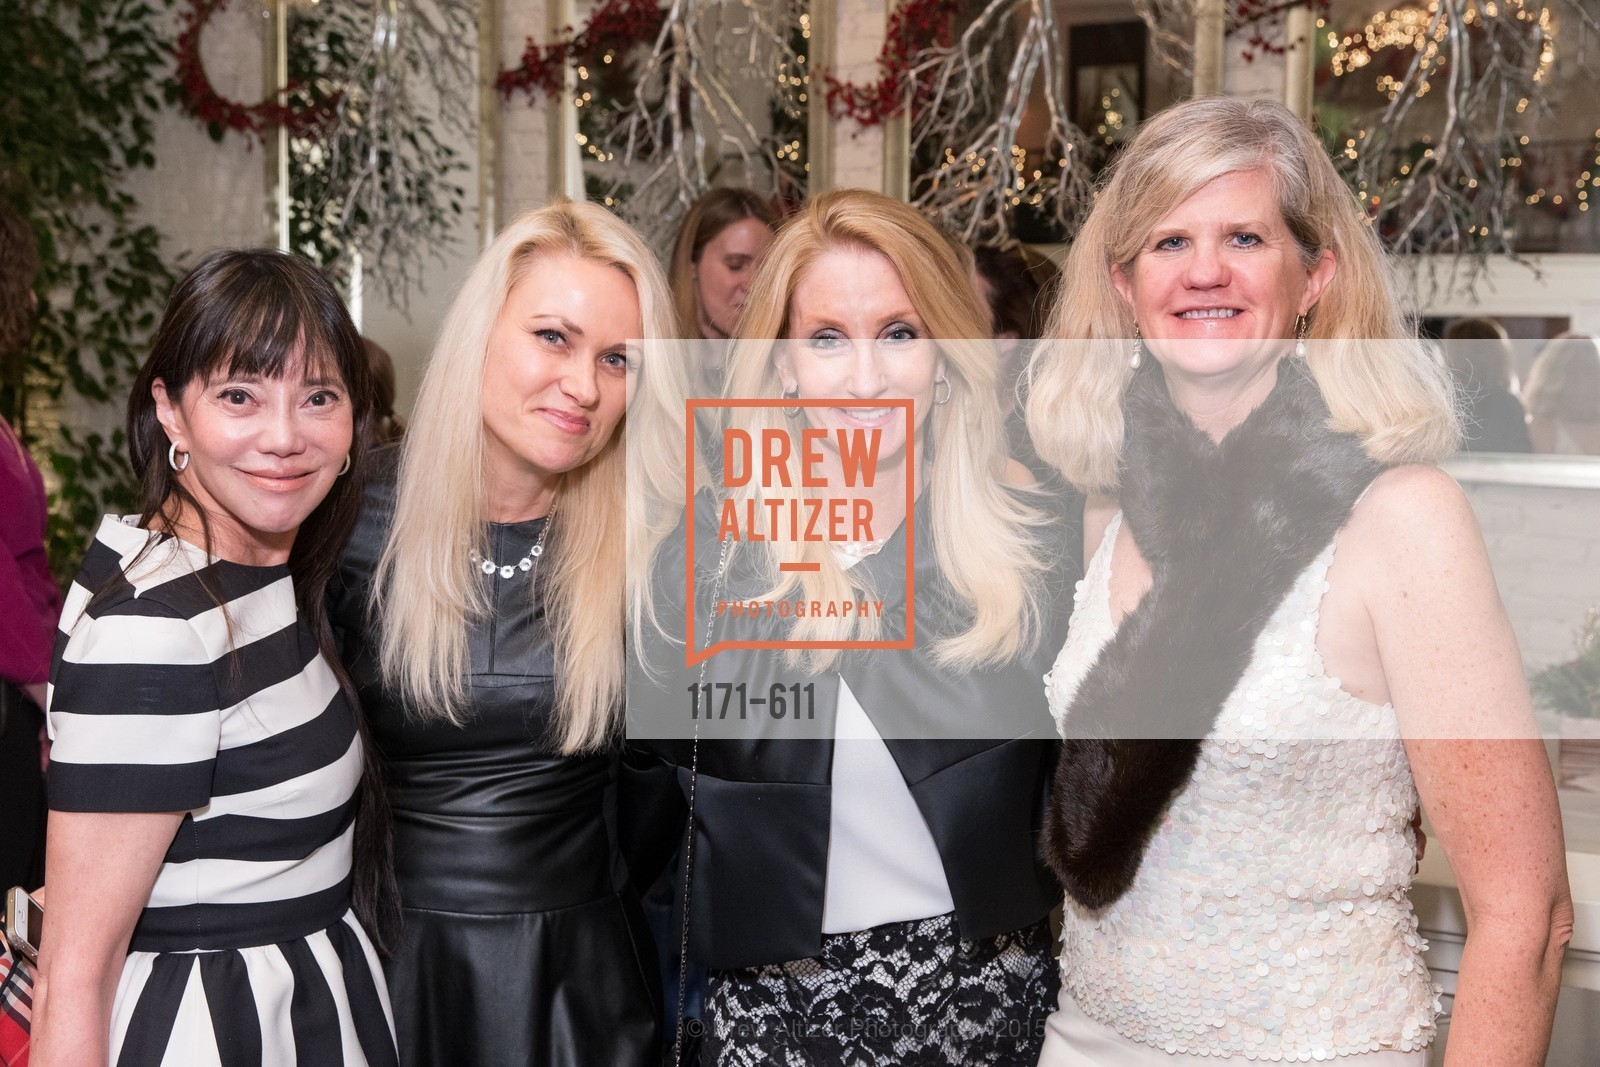 France Szeto, Maria Ralph, Jeannie Harris, Meg Ruxton, San Francisco Ballet Auxiliary's Gala Launch party hosted by La Perla., VILLA TAVERA. 27 HOTALING PLACE, December 1st, 2015,Drew Altizer, Drew Altizer Photography, full-service event agency, private events, San Francisco photographer, photographer California